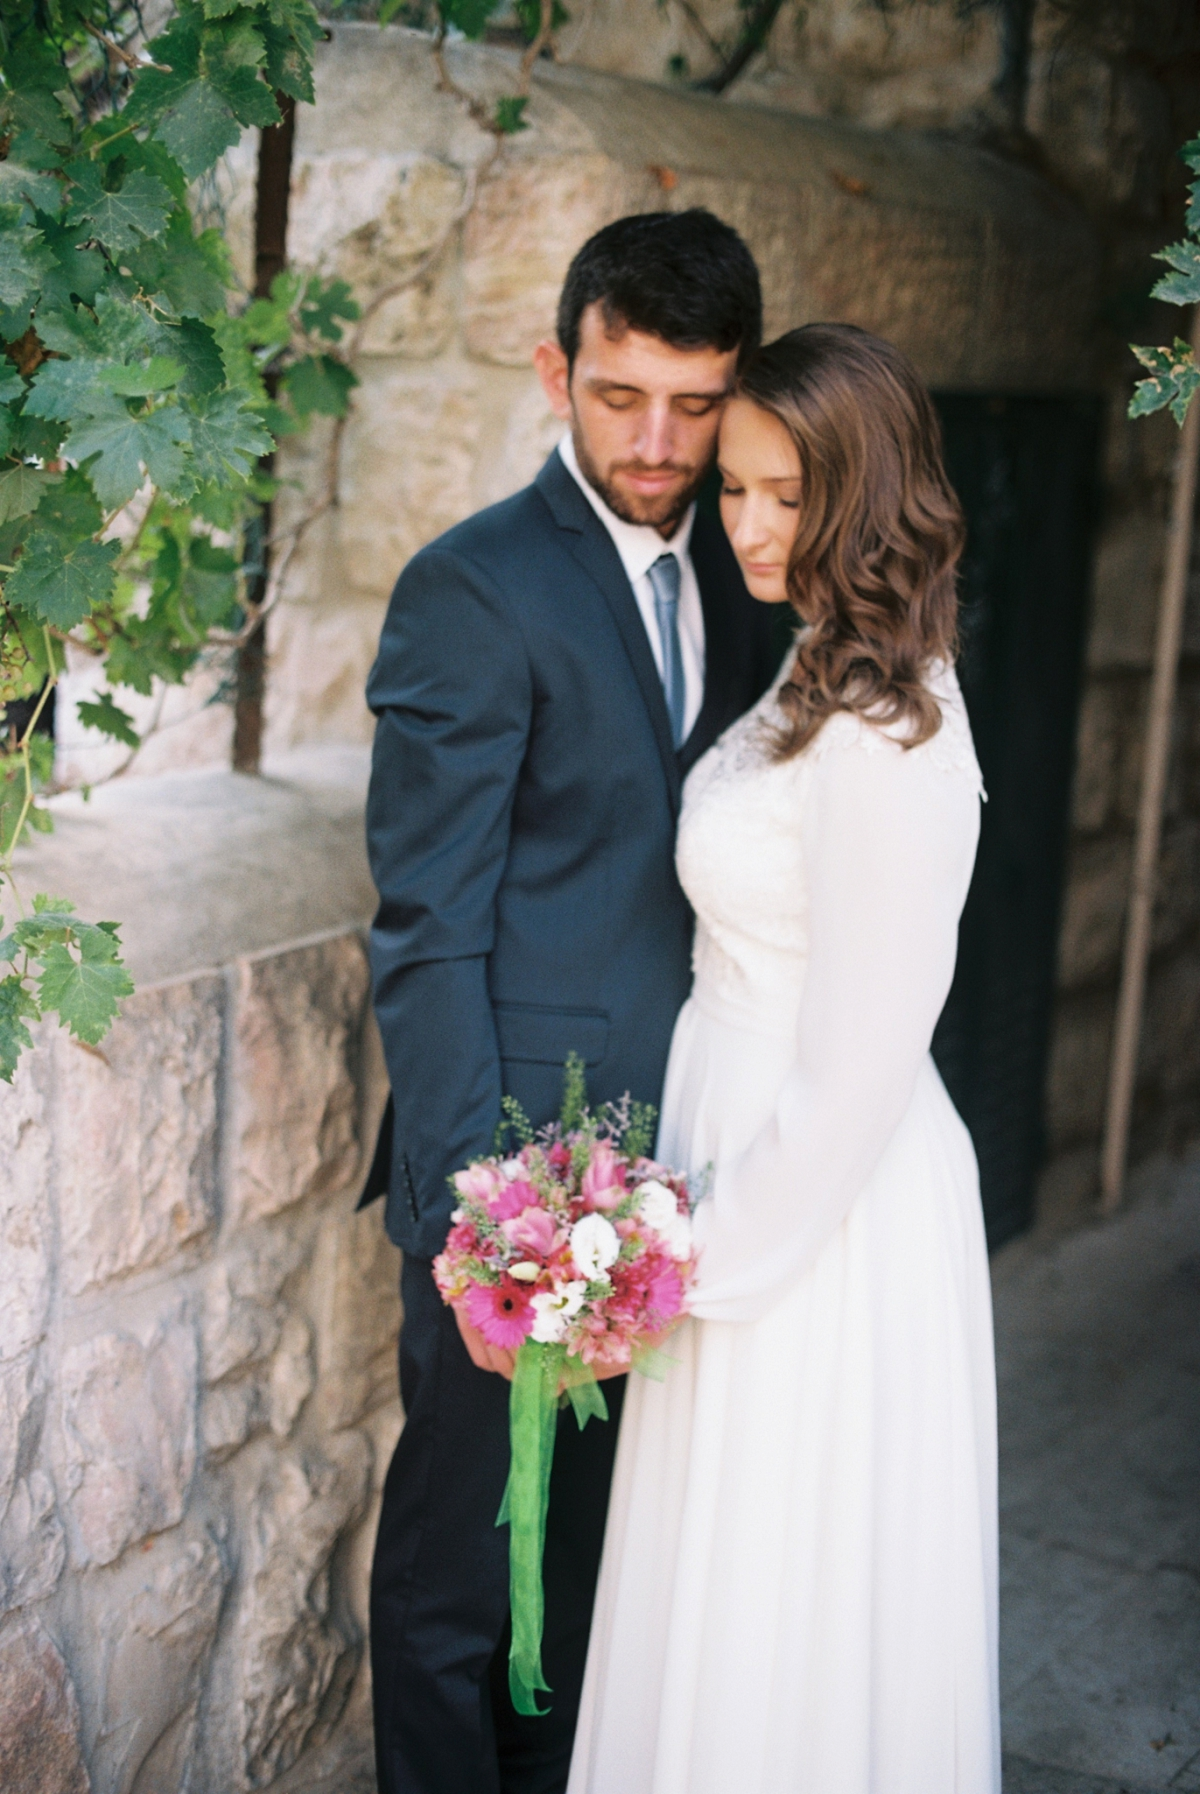 piccolino-wedding-jerusalem-israel-galia-and-michael-sigala-photography_0019